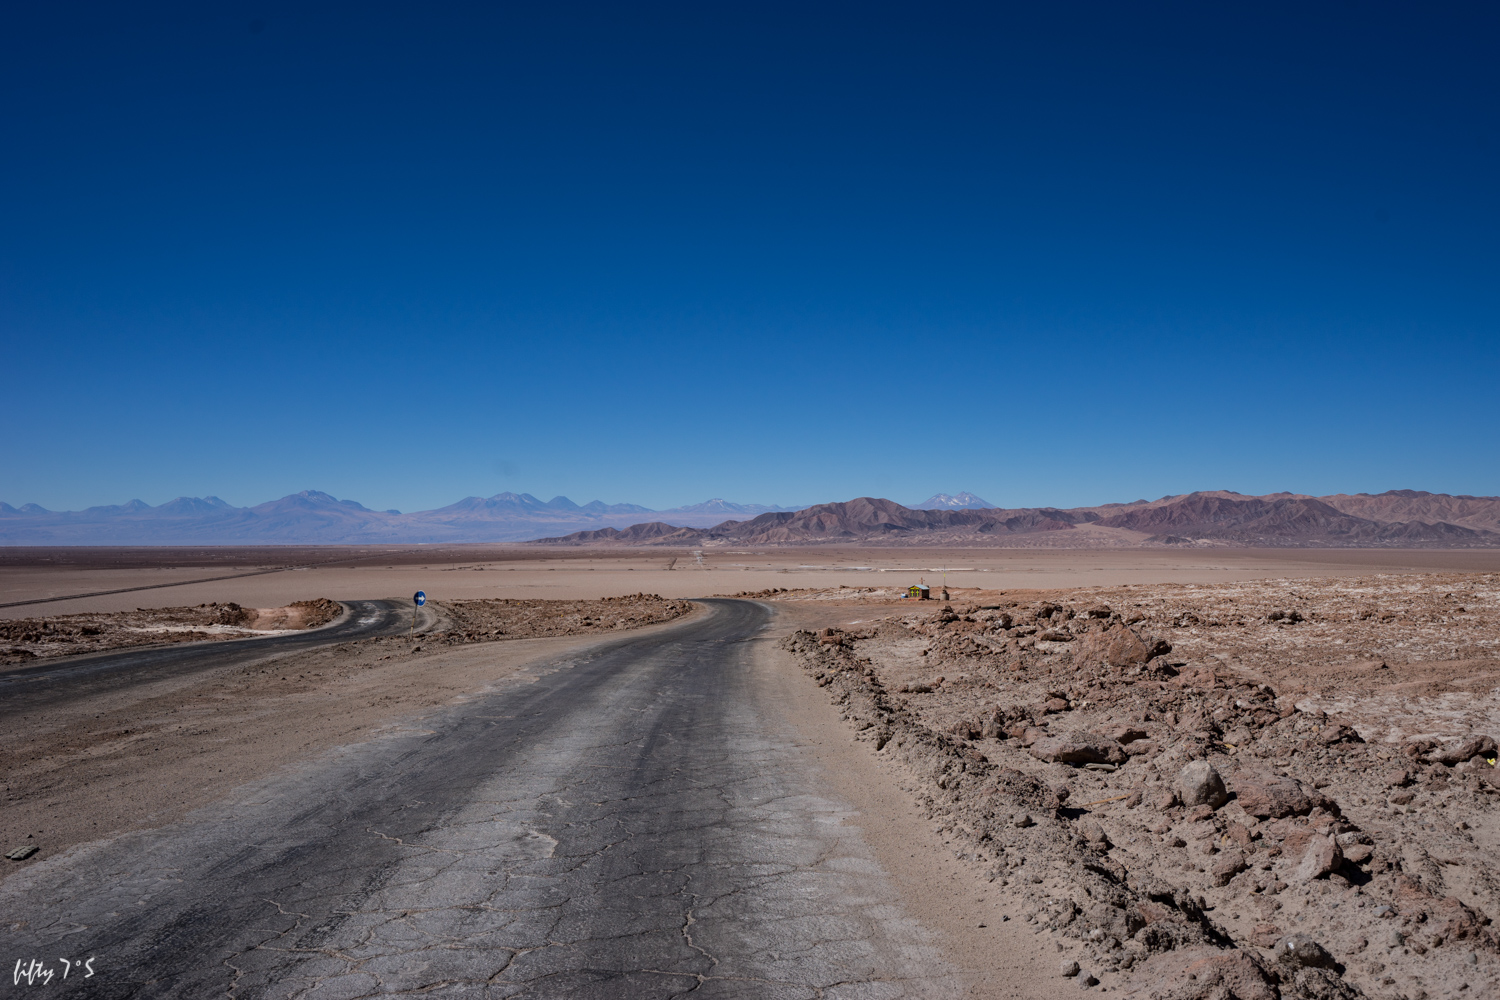 The Salar de Atacama is in a basin surrounded by volcanos, spectacular views for 360 degrees.